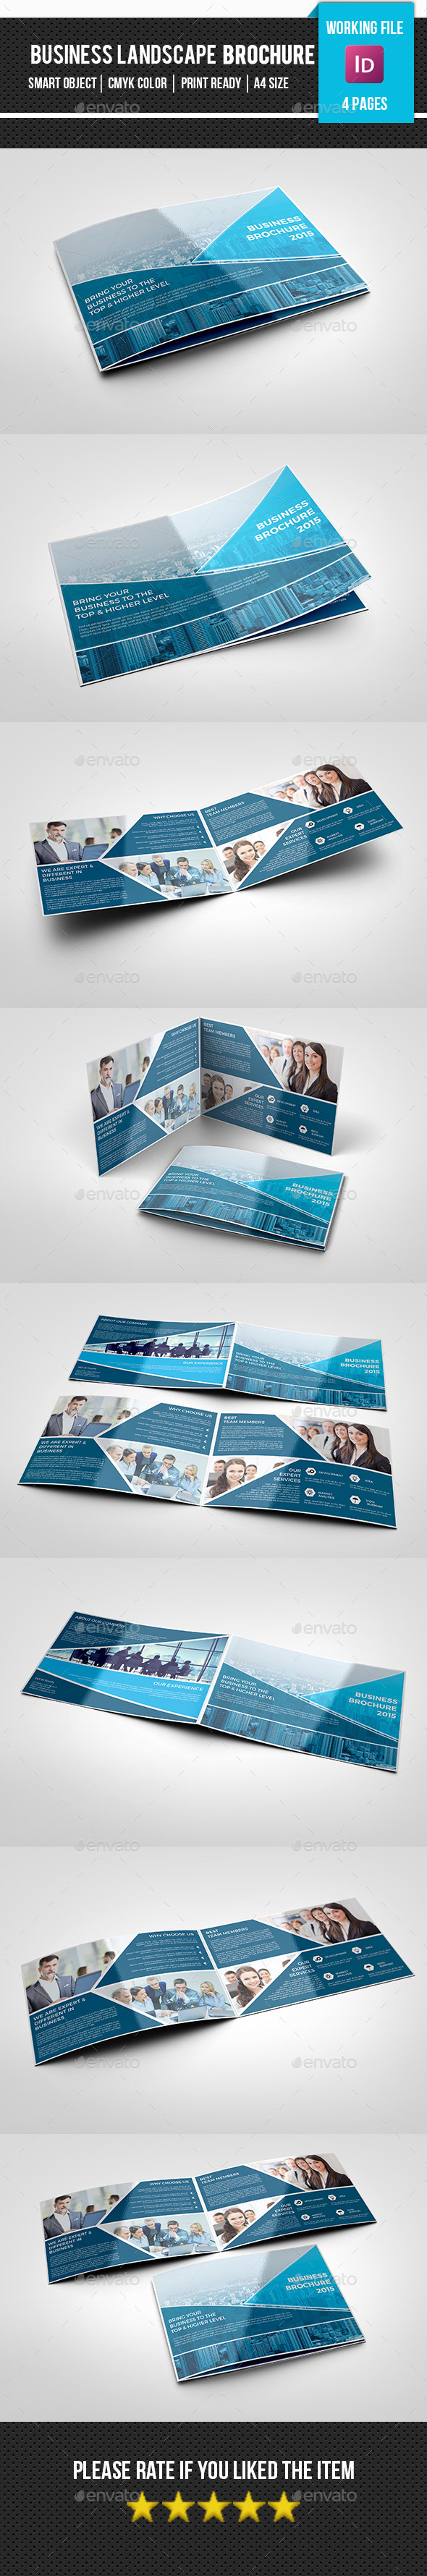 GraphicRiver Corporate Brochure Template-V268 11940472